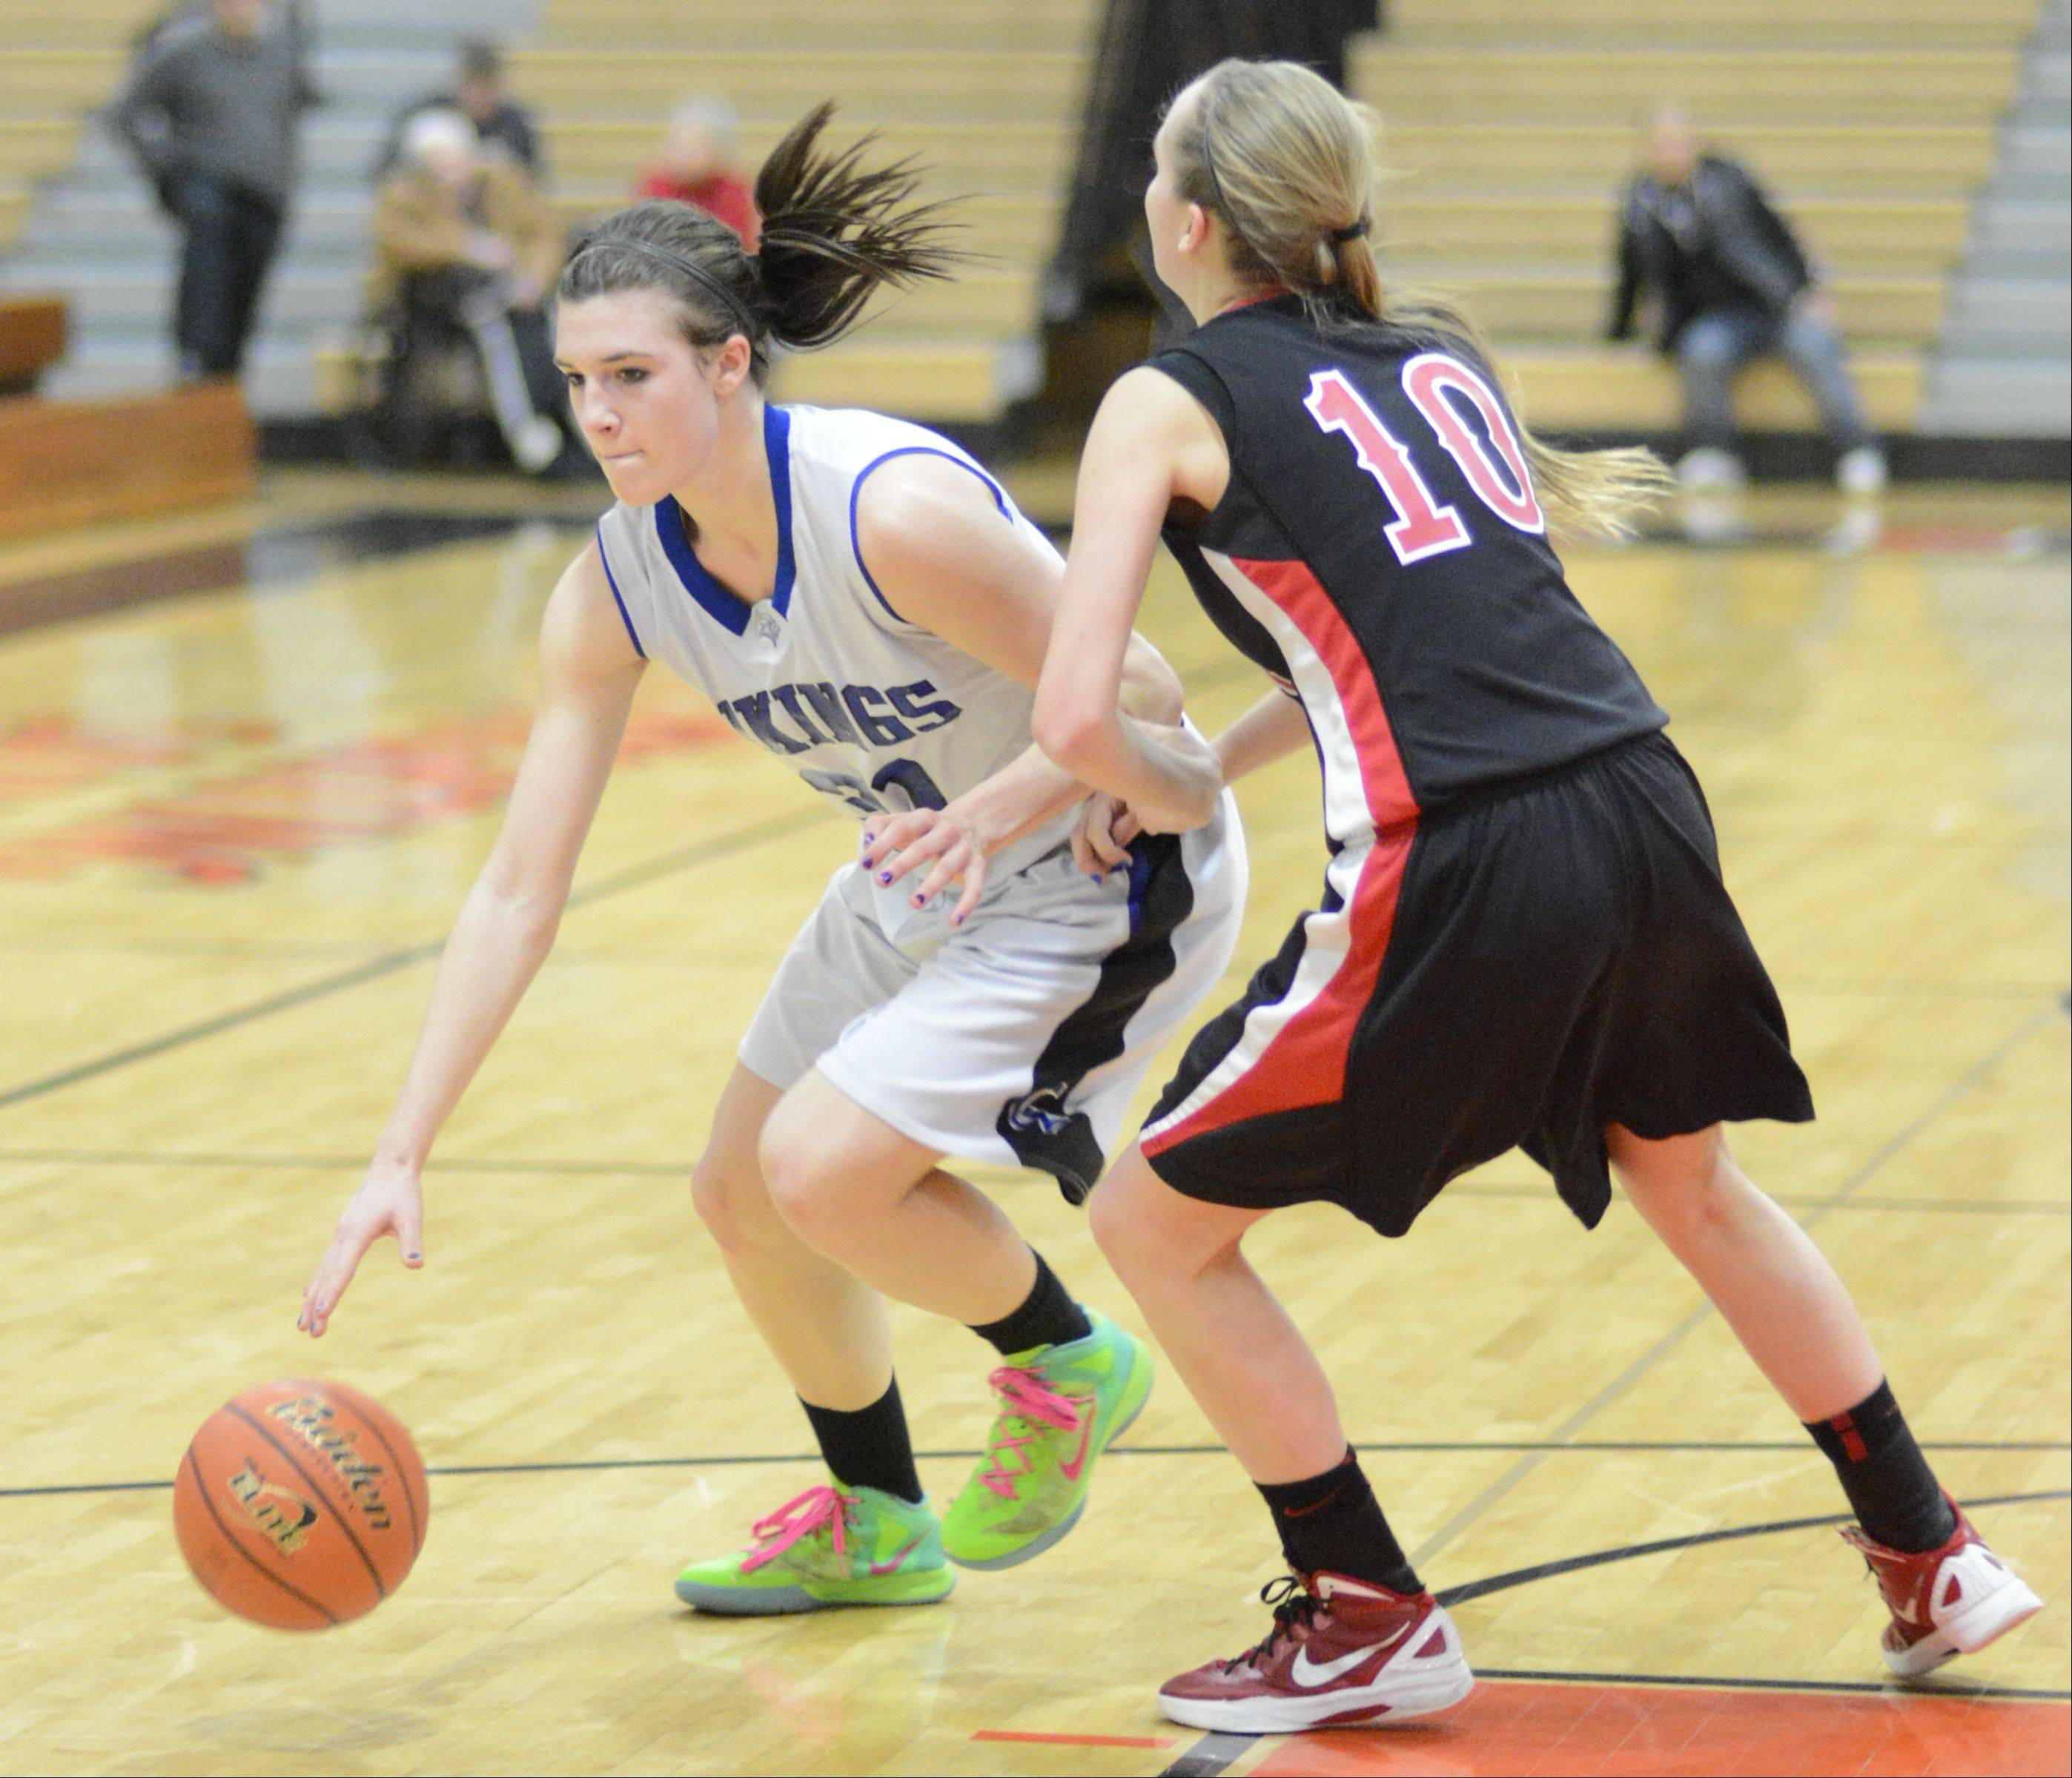 Images from the Geneva vs. Glenbard East girls basketball game Tuesday, February 12, 2013.